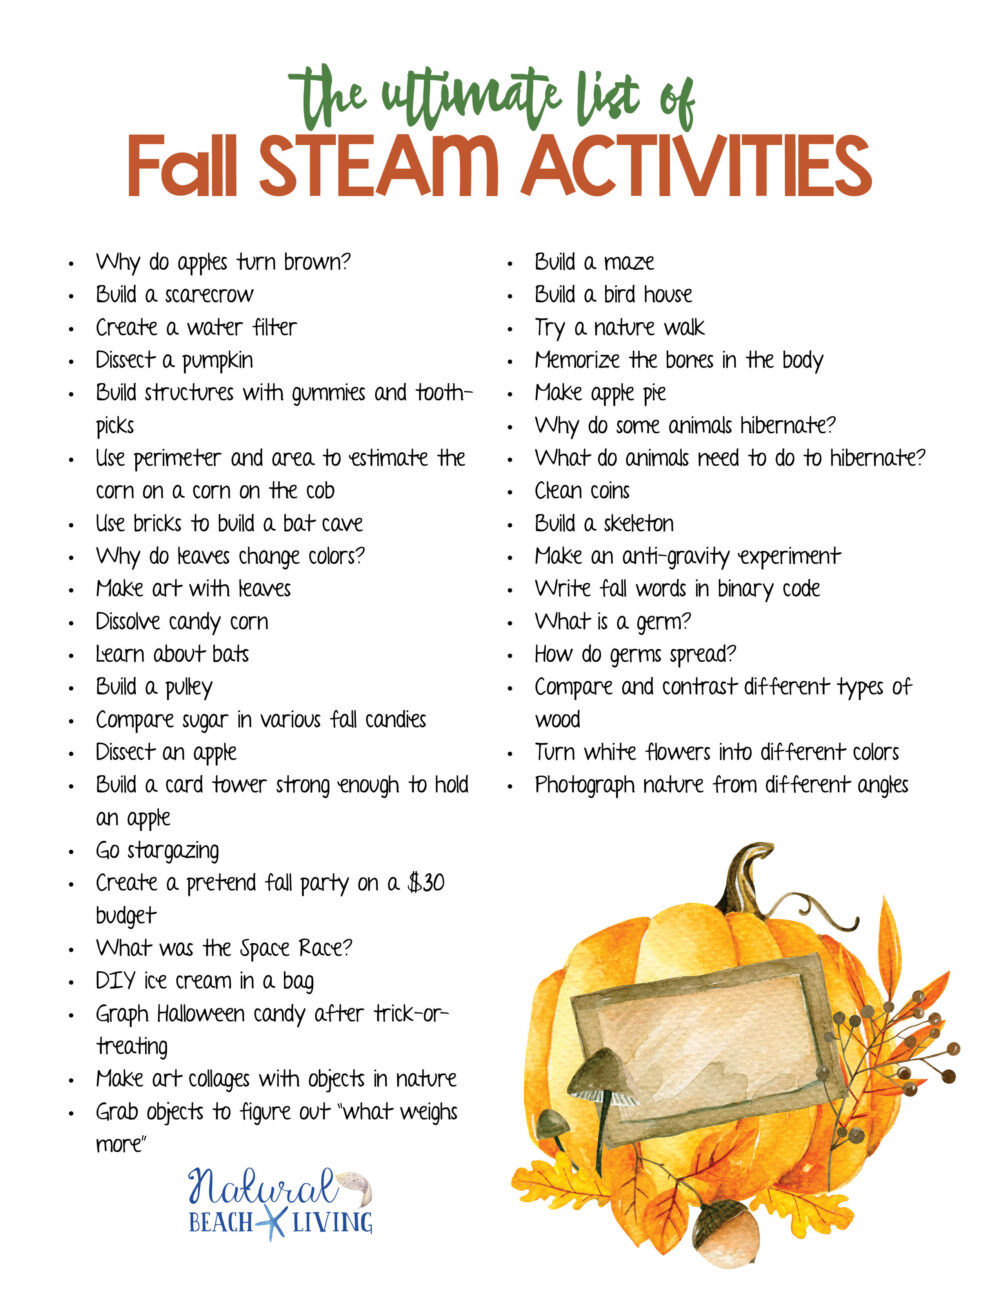 Fall Steam Activities For Kids Stem Lesson Plan Ideas And Free Printable Natural Beach Living